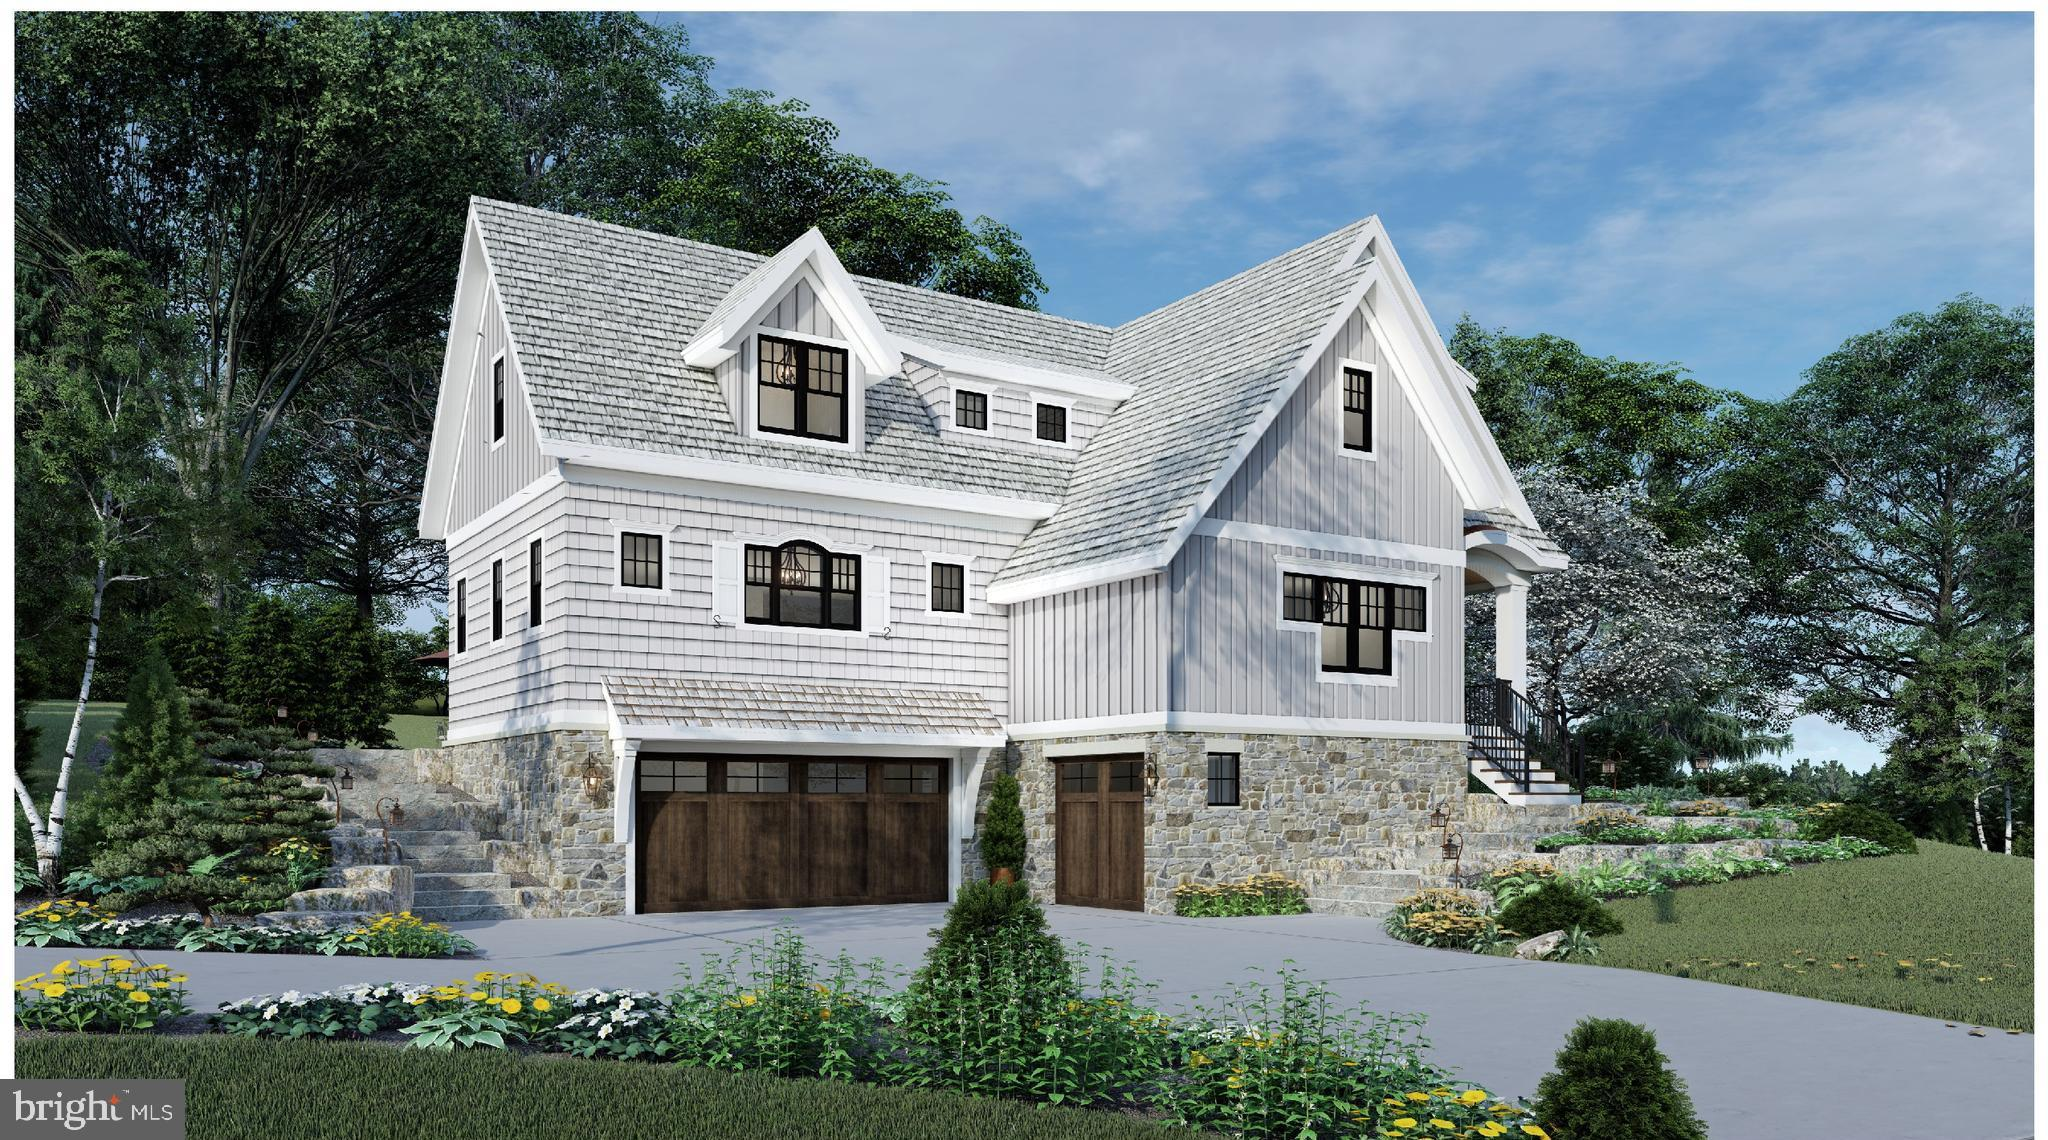 Don't miss out on the rare opportunity to own your dream home in one of the top neighborhoods in Philadelphia. The home will be situated in a lush park-like setting overlooking the Morris Arboretum. With an exclusive tie-in with the luxury boutique firm Harth Builders, you will receive the utmost quality in design, building material, and construction. The proposed home will have approximately 4700 sq ft of finished living space and a three-car garage.  Get in now while there is still a chance to pick your finishes!  Harth Builders is a design/build firm so you can meet with one of their design team to start customizing your new home today! 10-year tax abatement will be included. Estimate of completion Summer 2022!